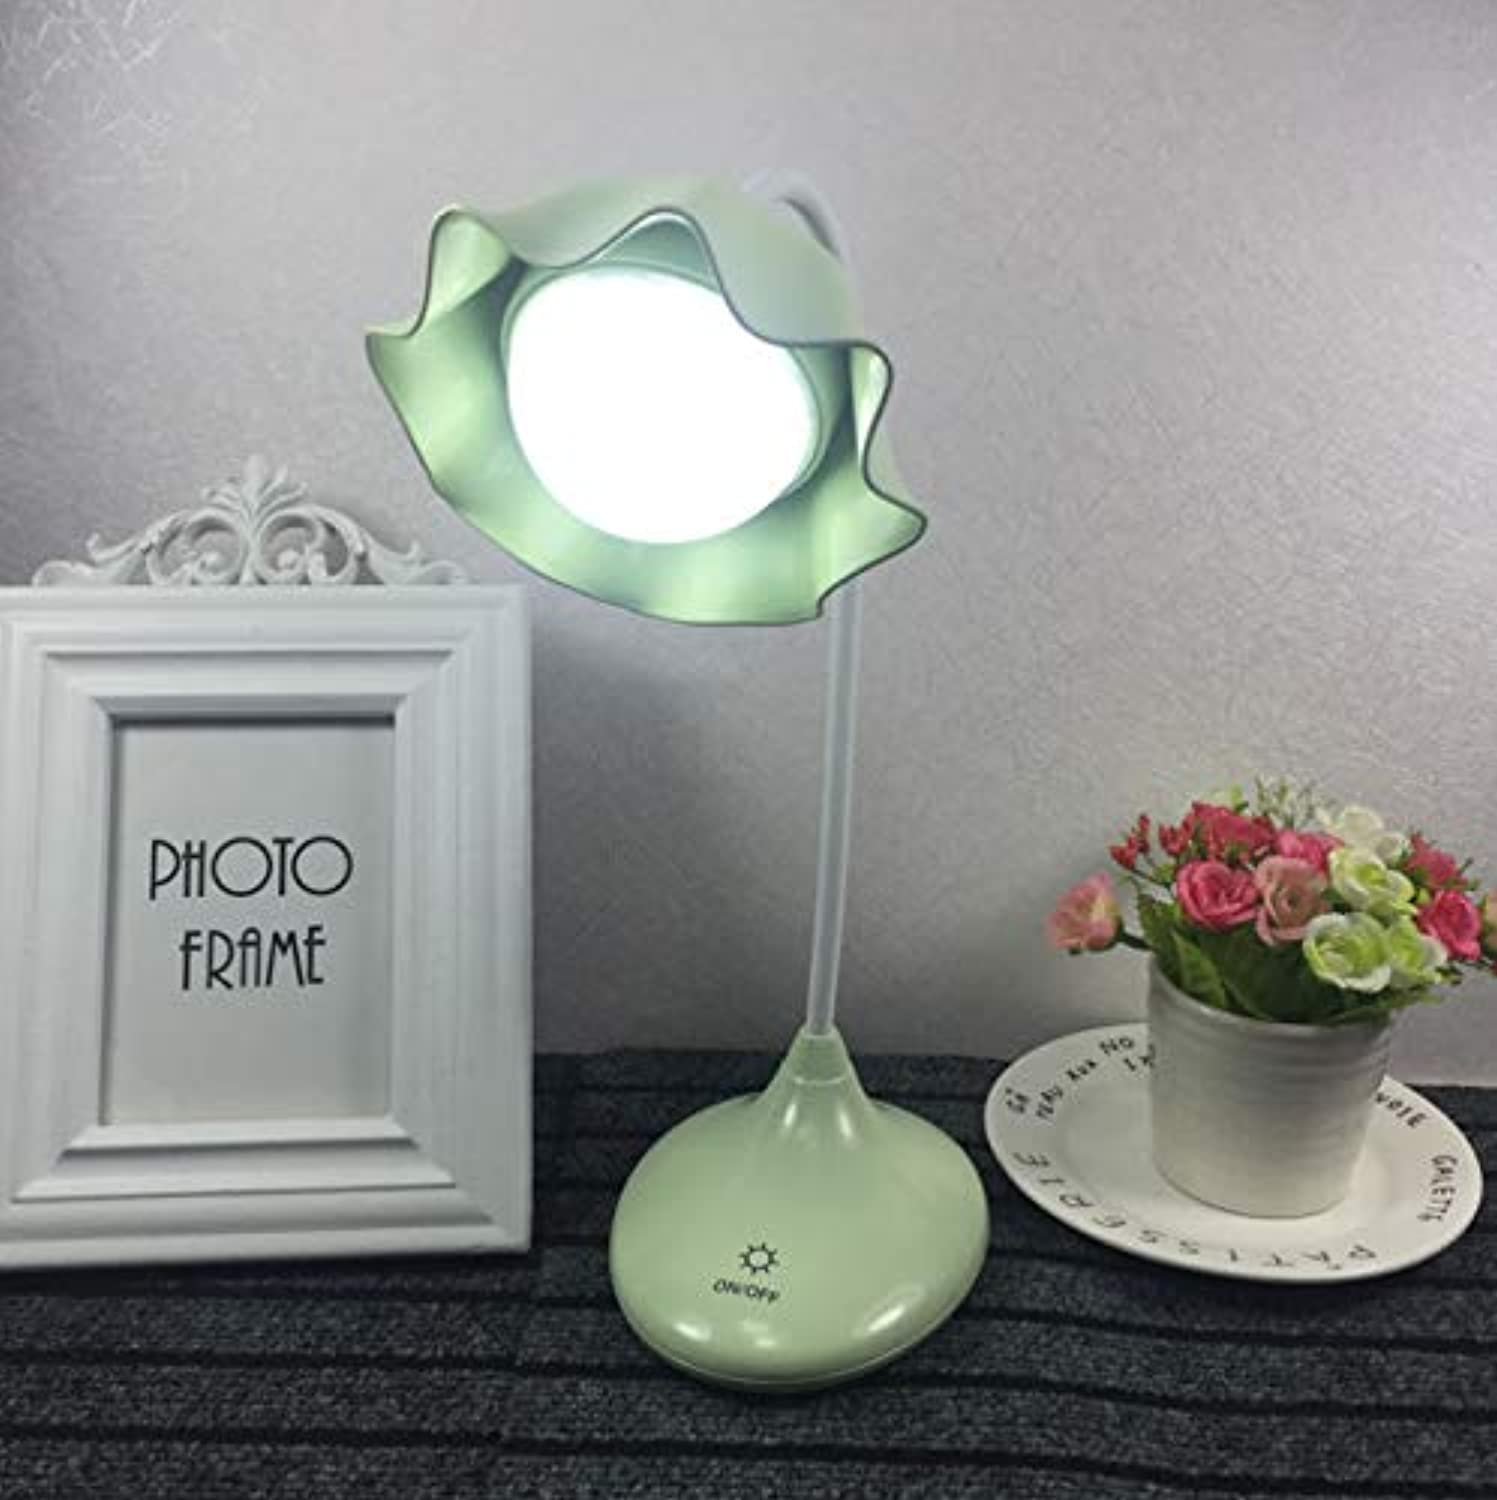 Creative Lotus Dimming Led Desk Lamp Rechargeable Desk Usb Student Dormitory Reading Bedside Table Lamp C